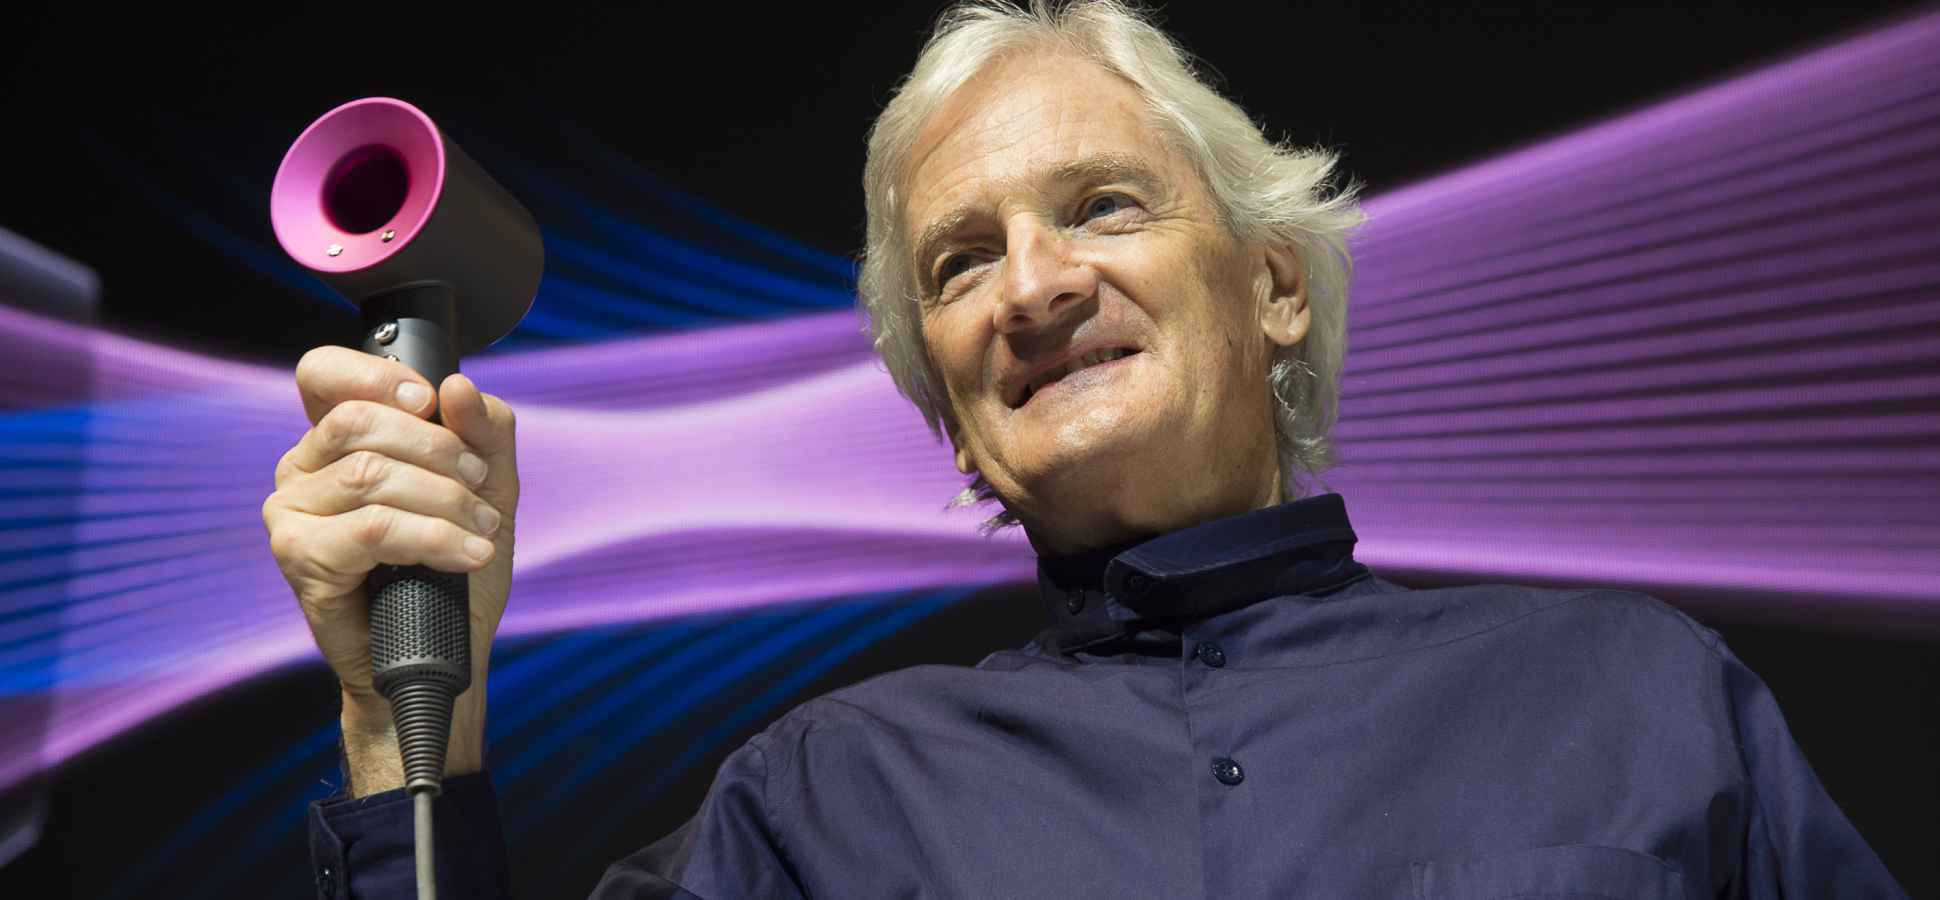 Dyson's New Deluxe Appliance Is Like the Tesla of Hair Dryers | Inc com